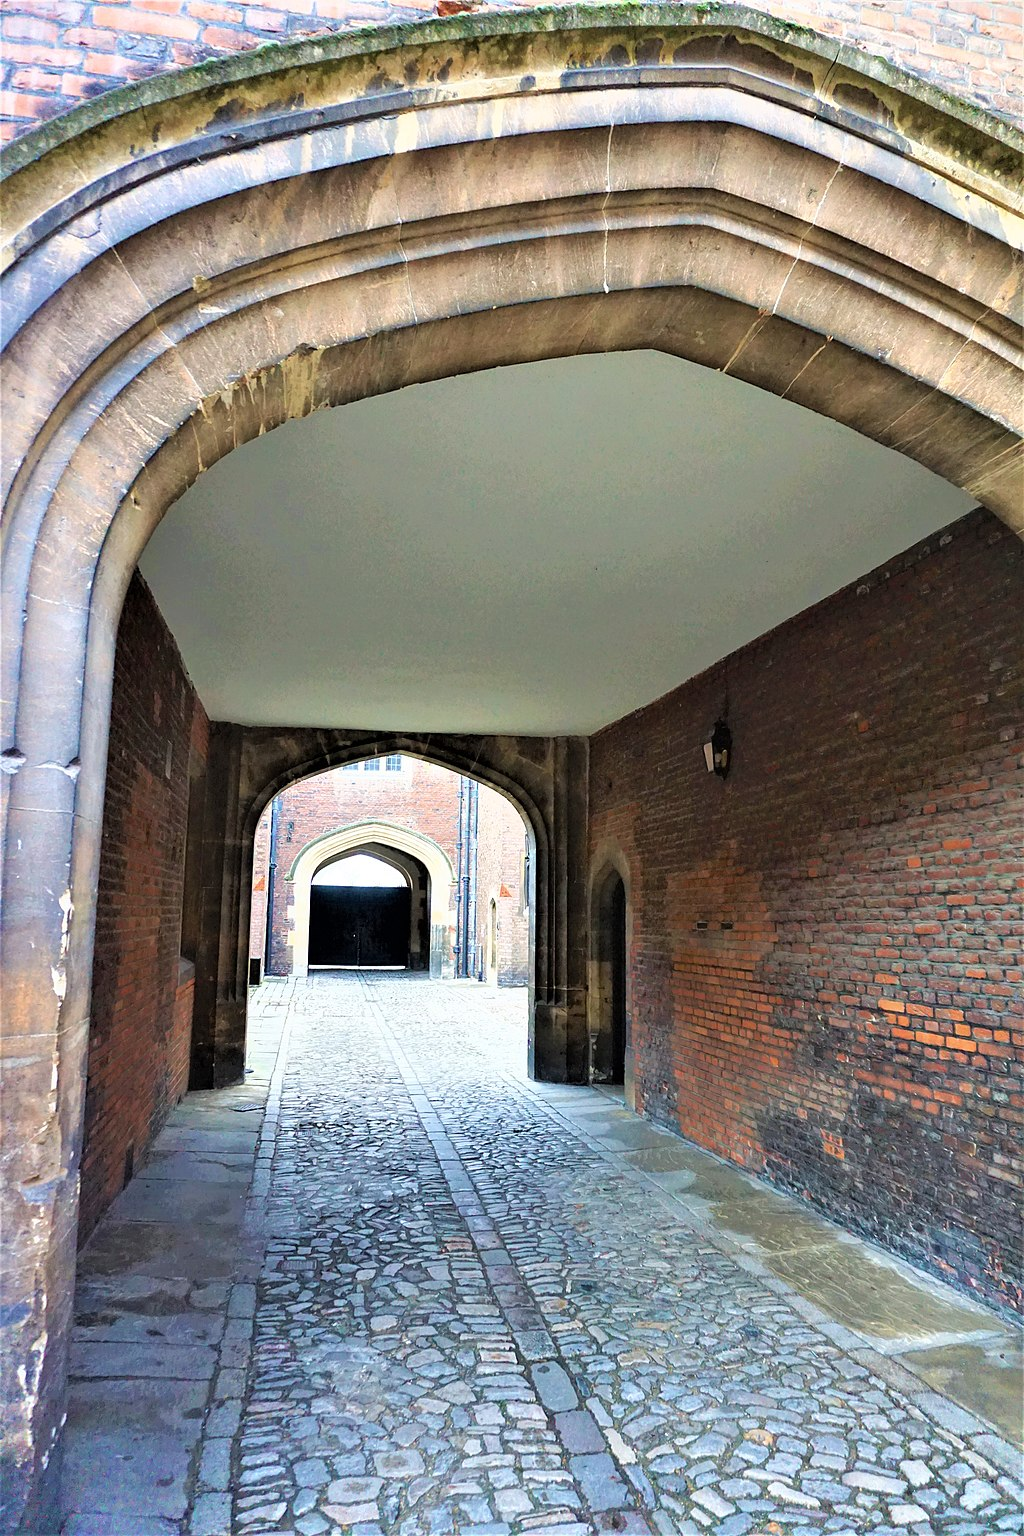 Tradesman's Entrance Areas - Hampton Court Palace - Joy of Museums 2